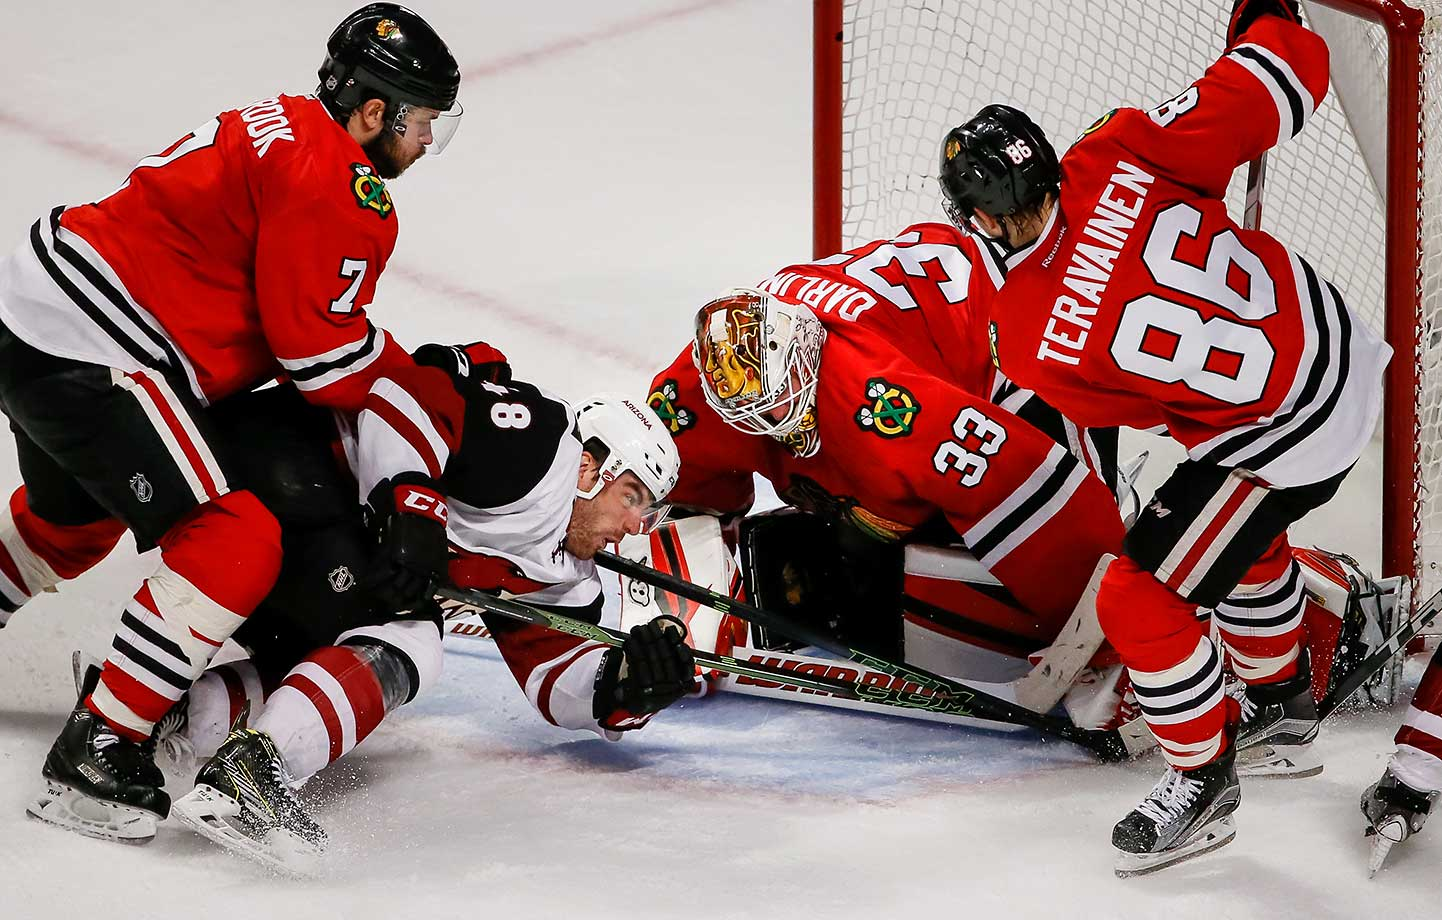 Jordan Martinook of the Arizona Coyotes attempts to get the puck past goalie Scott Darling of the Chicago Blackhawks.